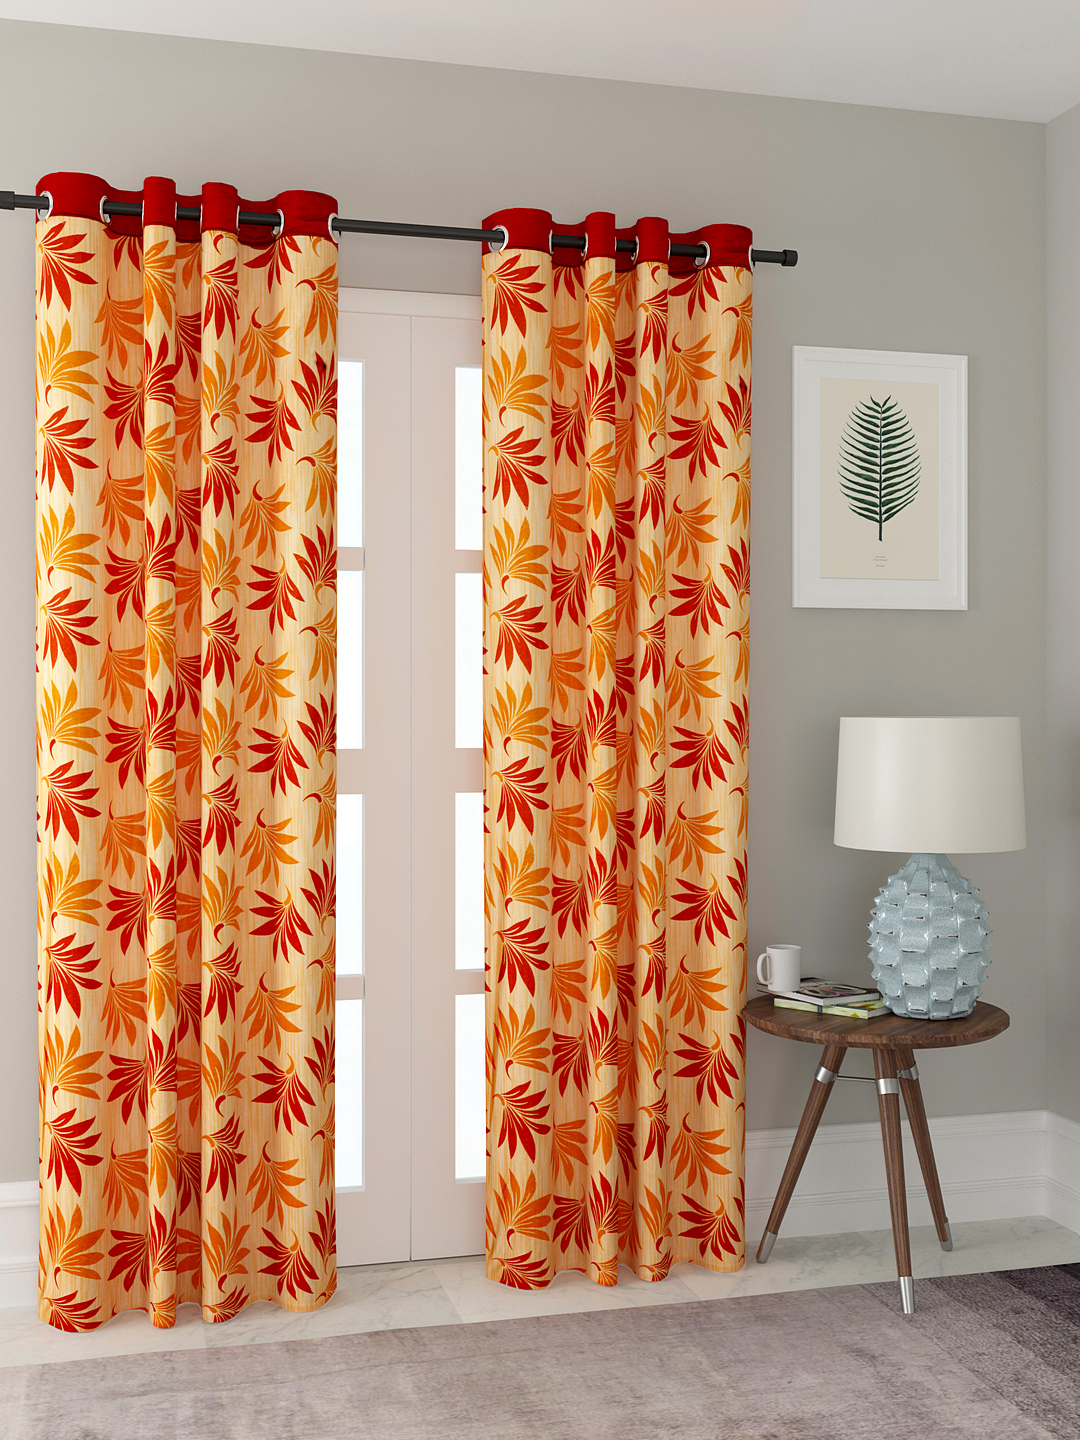 Polyester Printed Door Curtains for Bedroom, Kitchen, Kids or Living Room-023_Set of 2